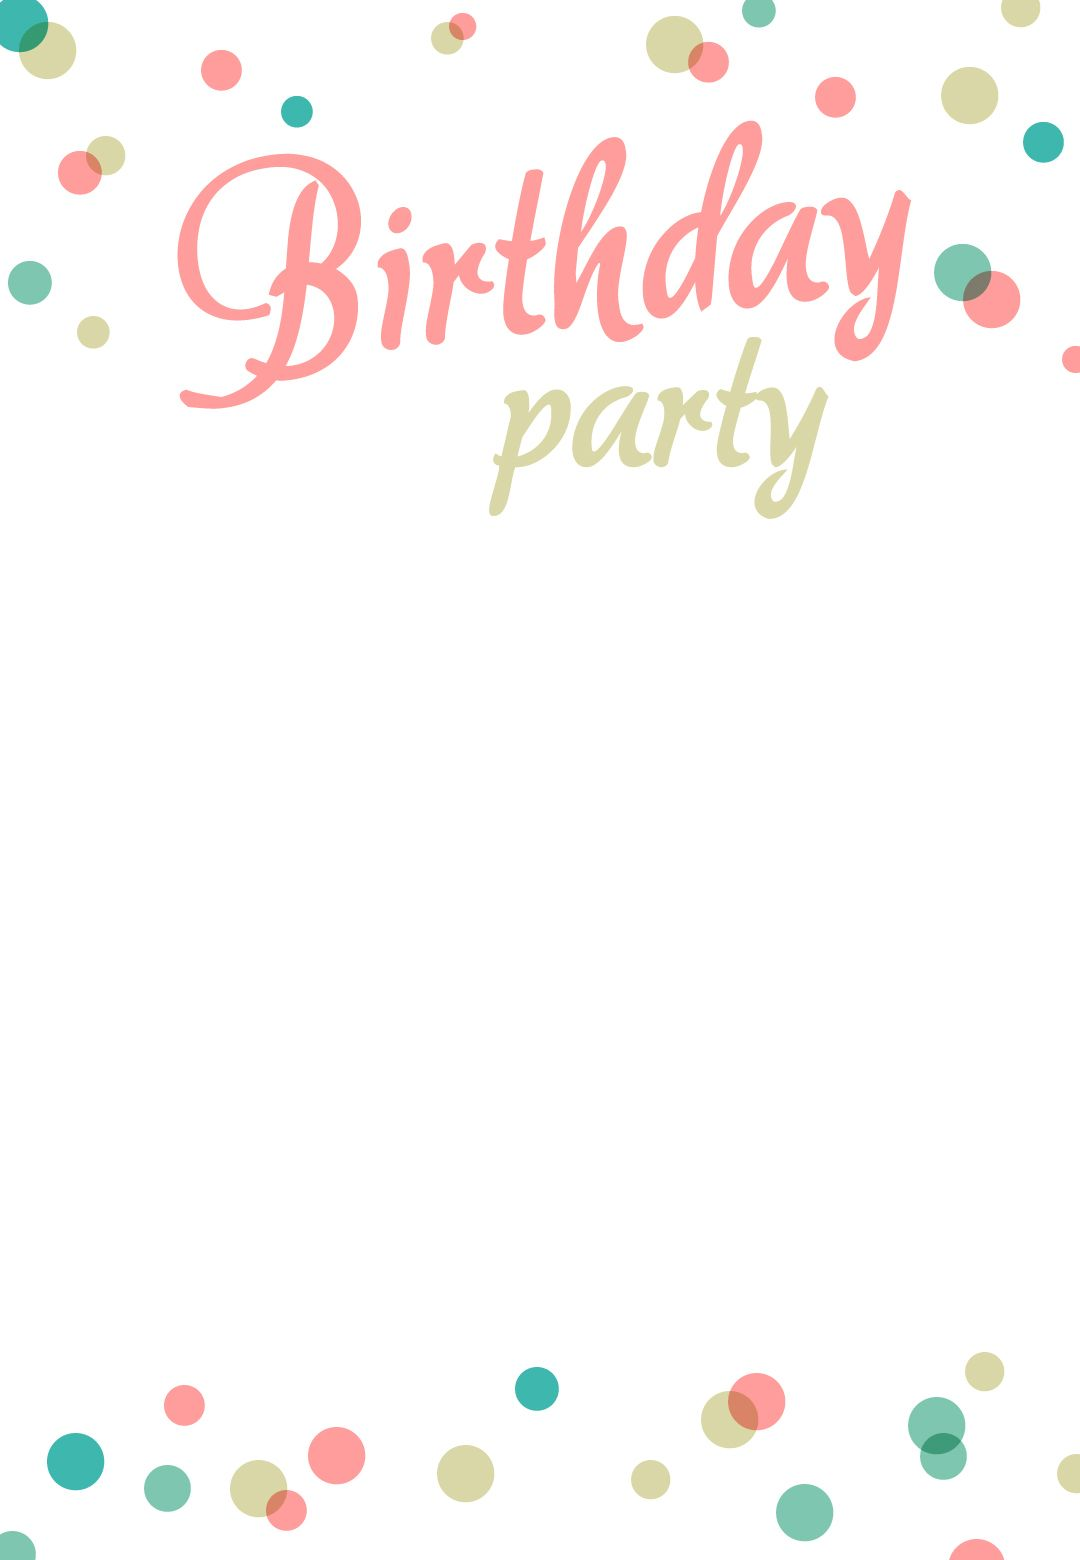 #Birthday Party #Invitation Free Printable Birthday party invitations free Free party